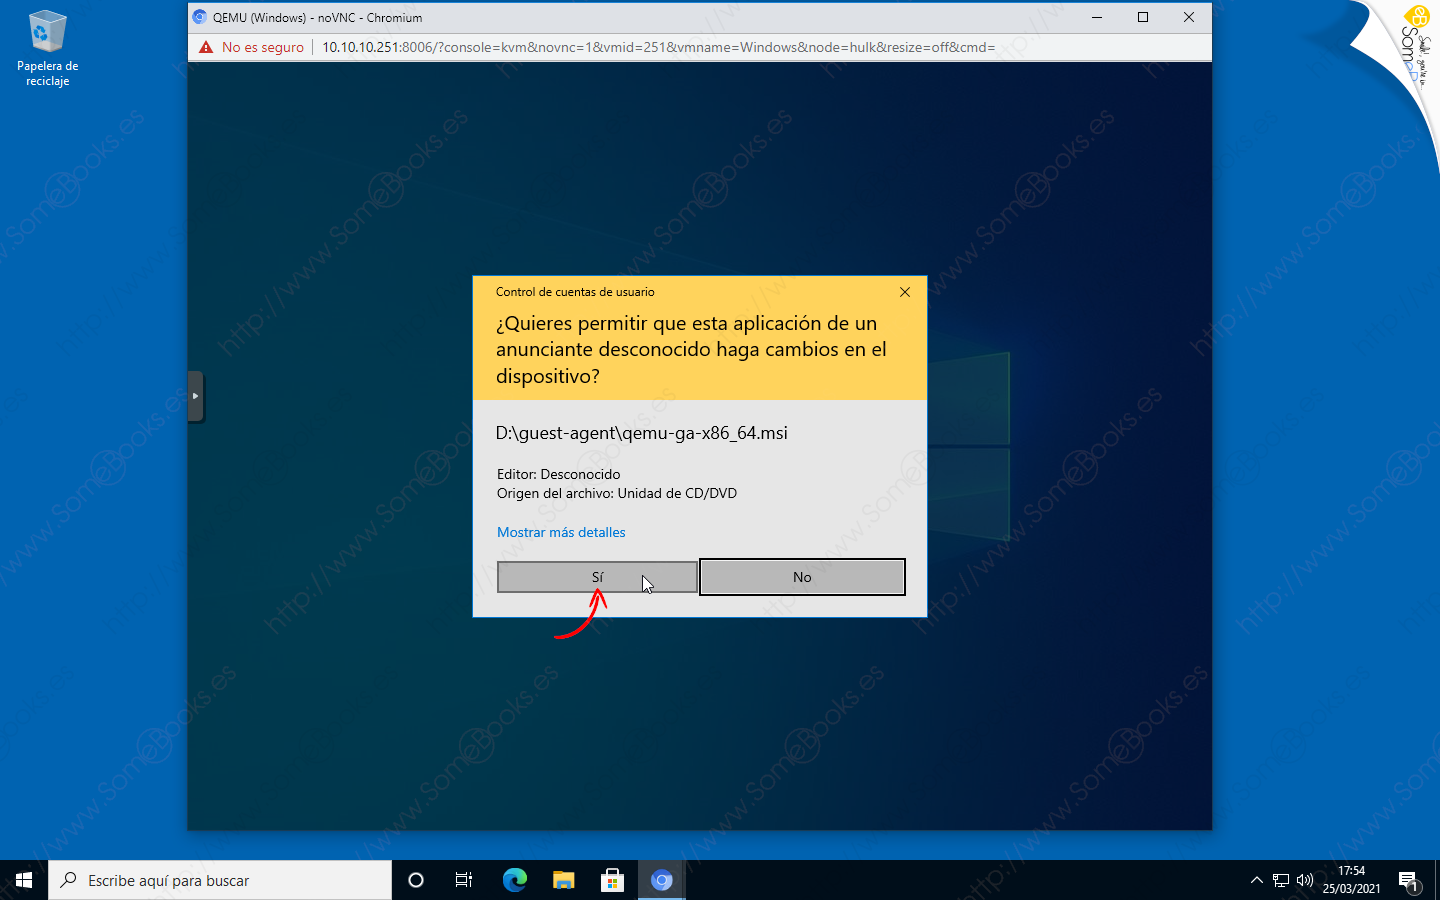 Instalar-Windows-10-en-una-maquina-virtual-sobre-Proxmox-VE-017